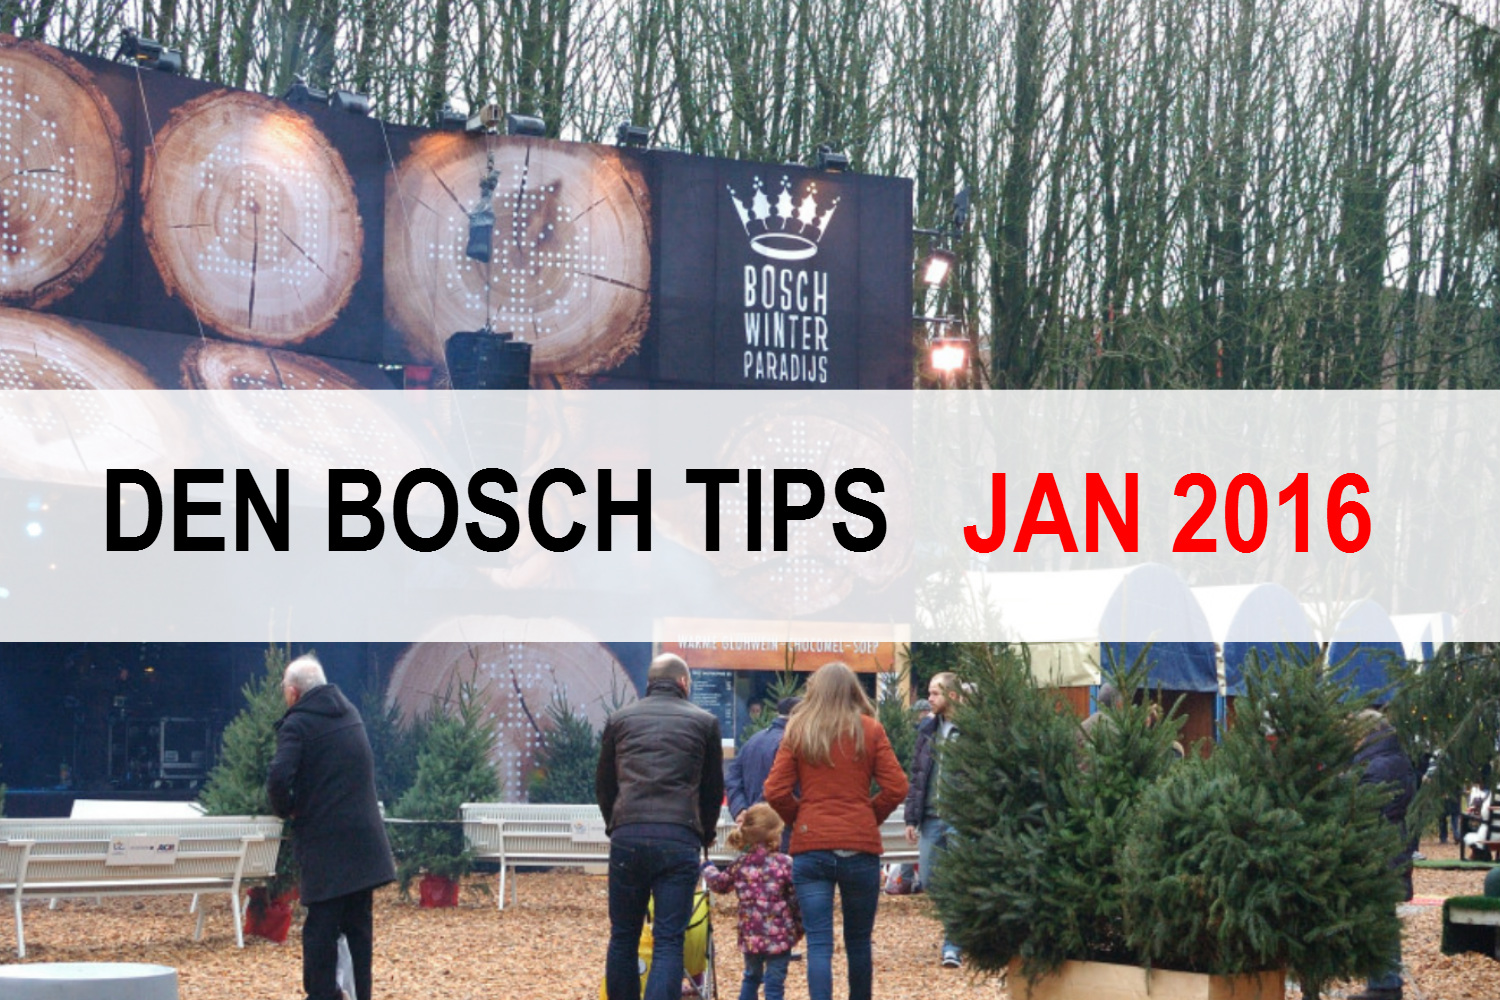 Den Bosch Tips januari 2016 - Den Bosch Tips